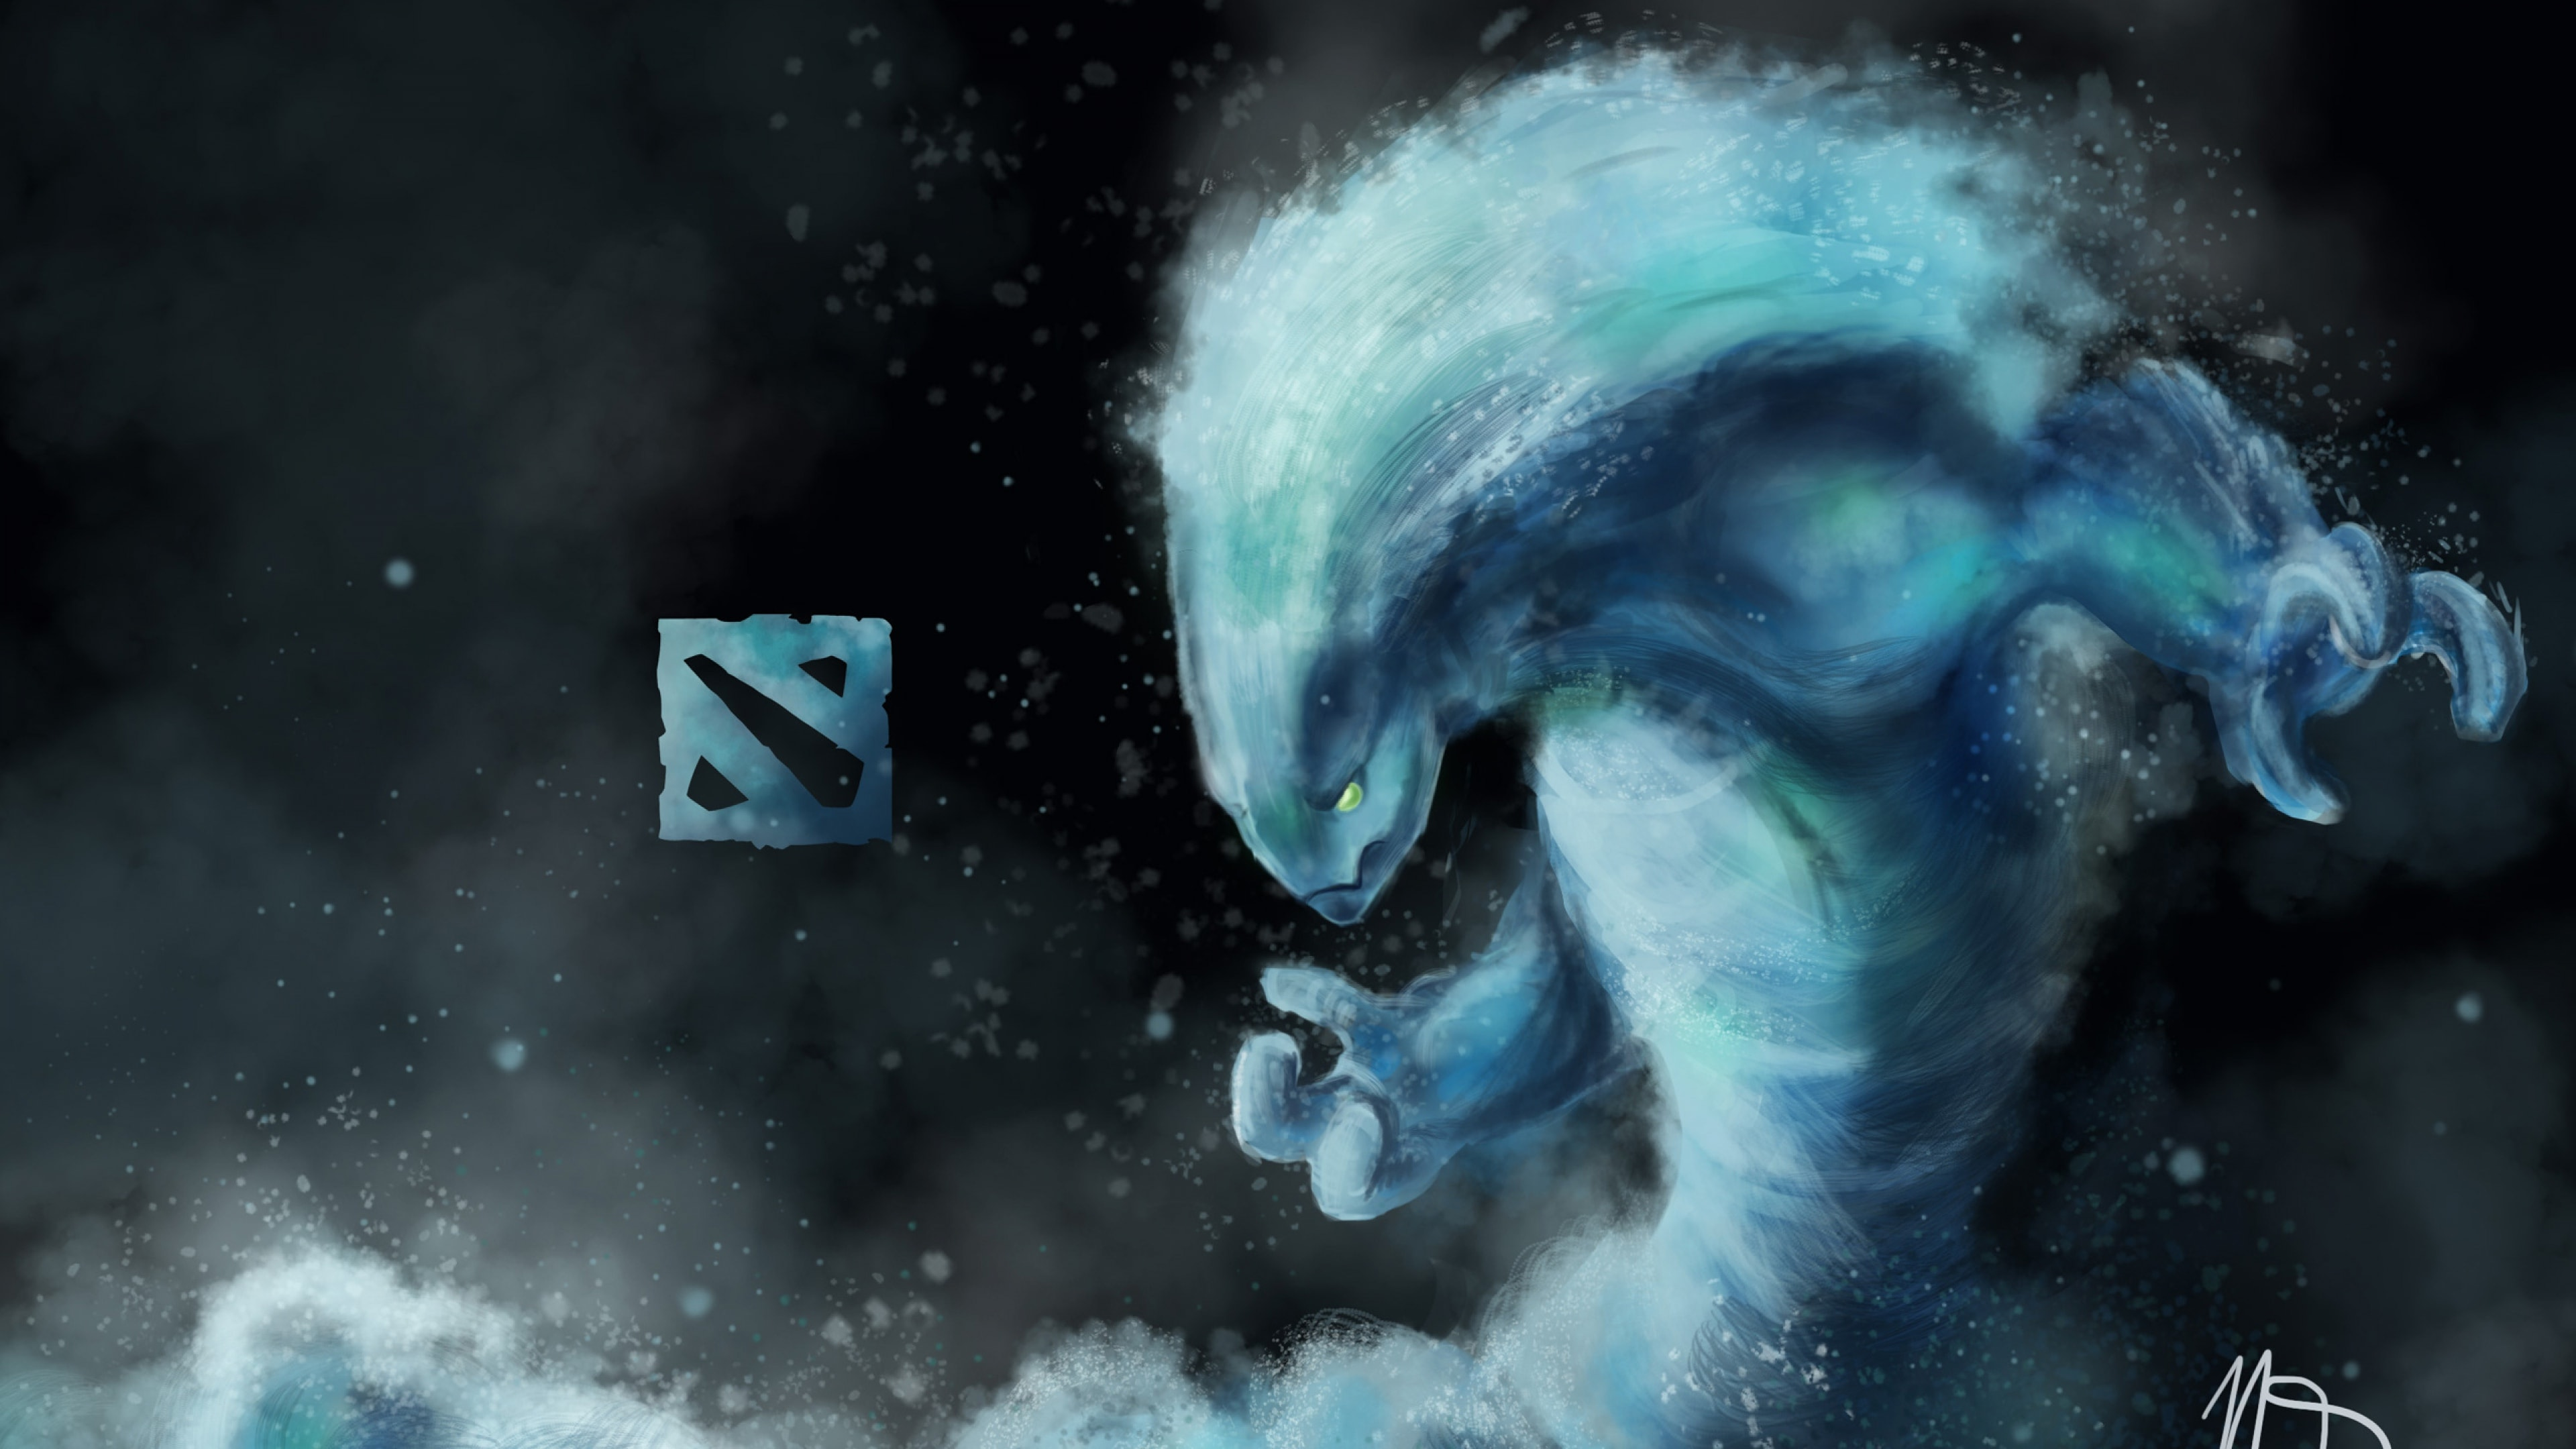 Dota2 : Morphling widescreen wallpapers